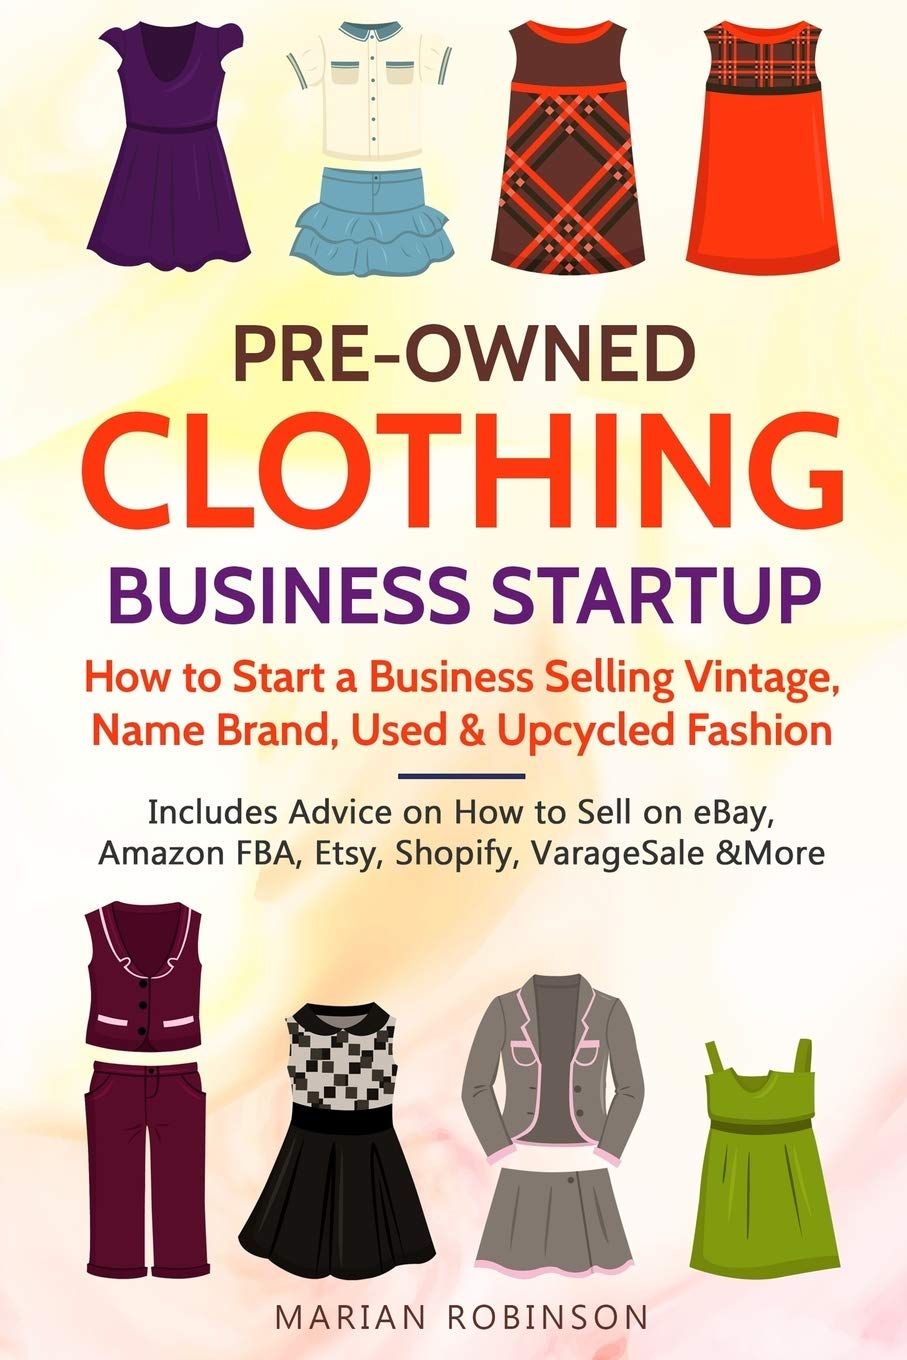 Pre Owned Clothing Business Startup How To Start A Business Selling Vintage Name Brand Used Upcycled Fashion Includes Advice On How To Sell On Ebay Amazon Fba Etsy Shopify Varagesale More